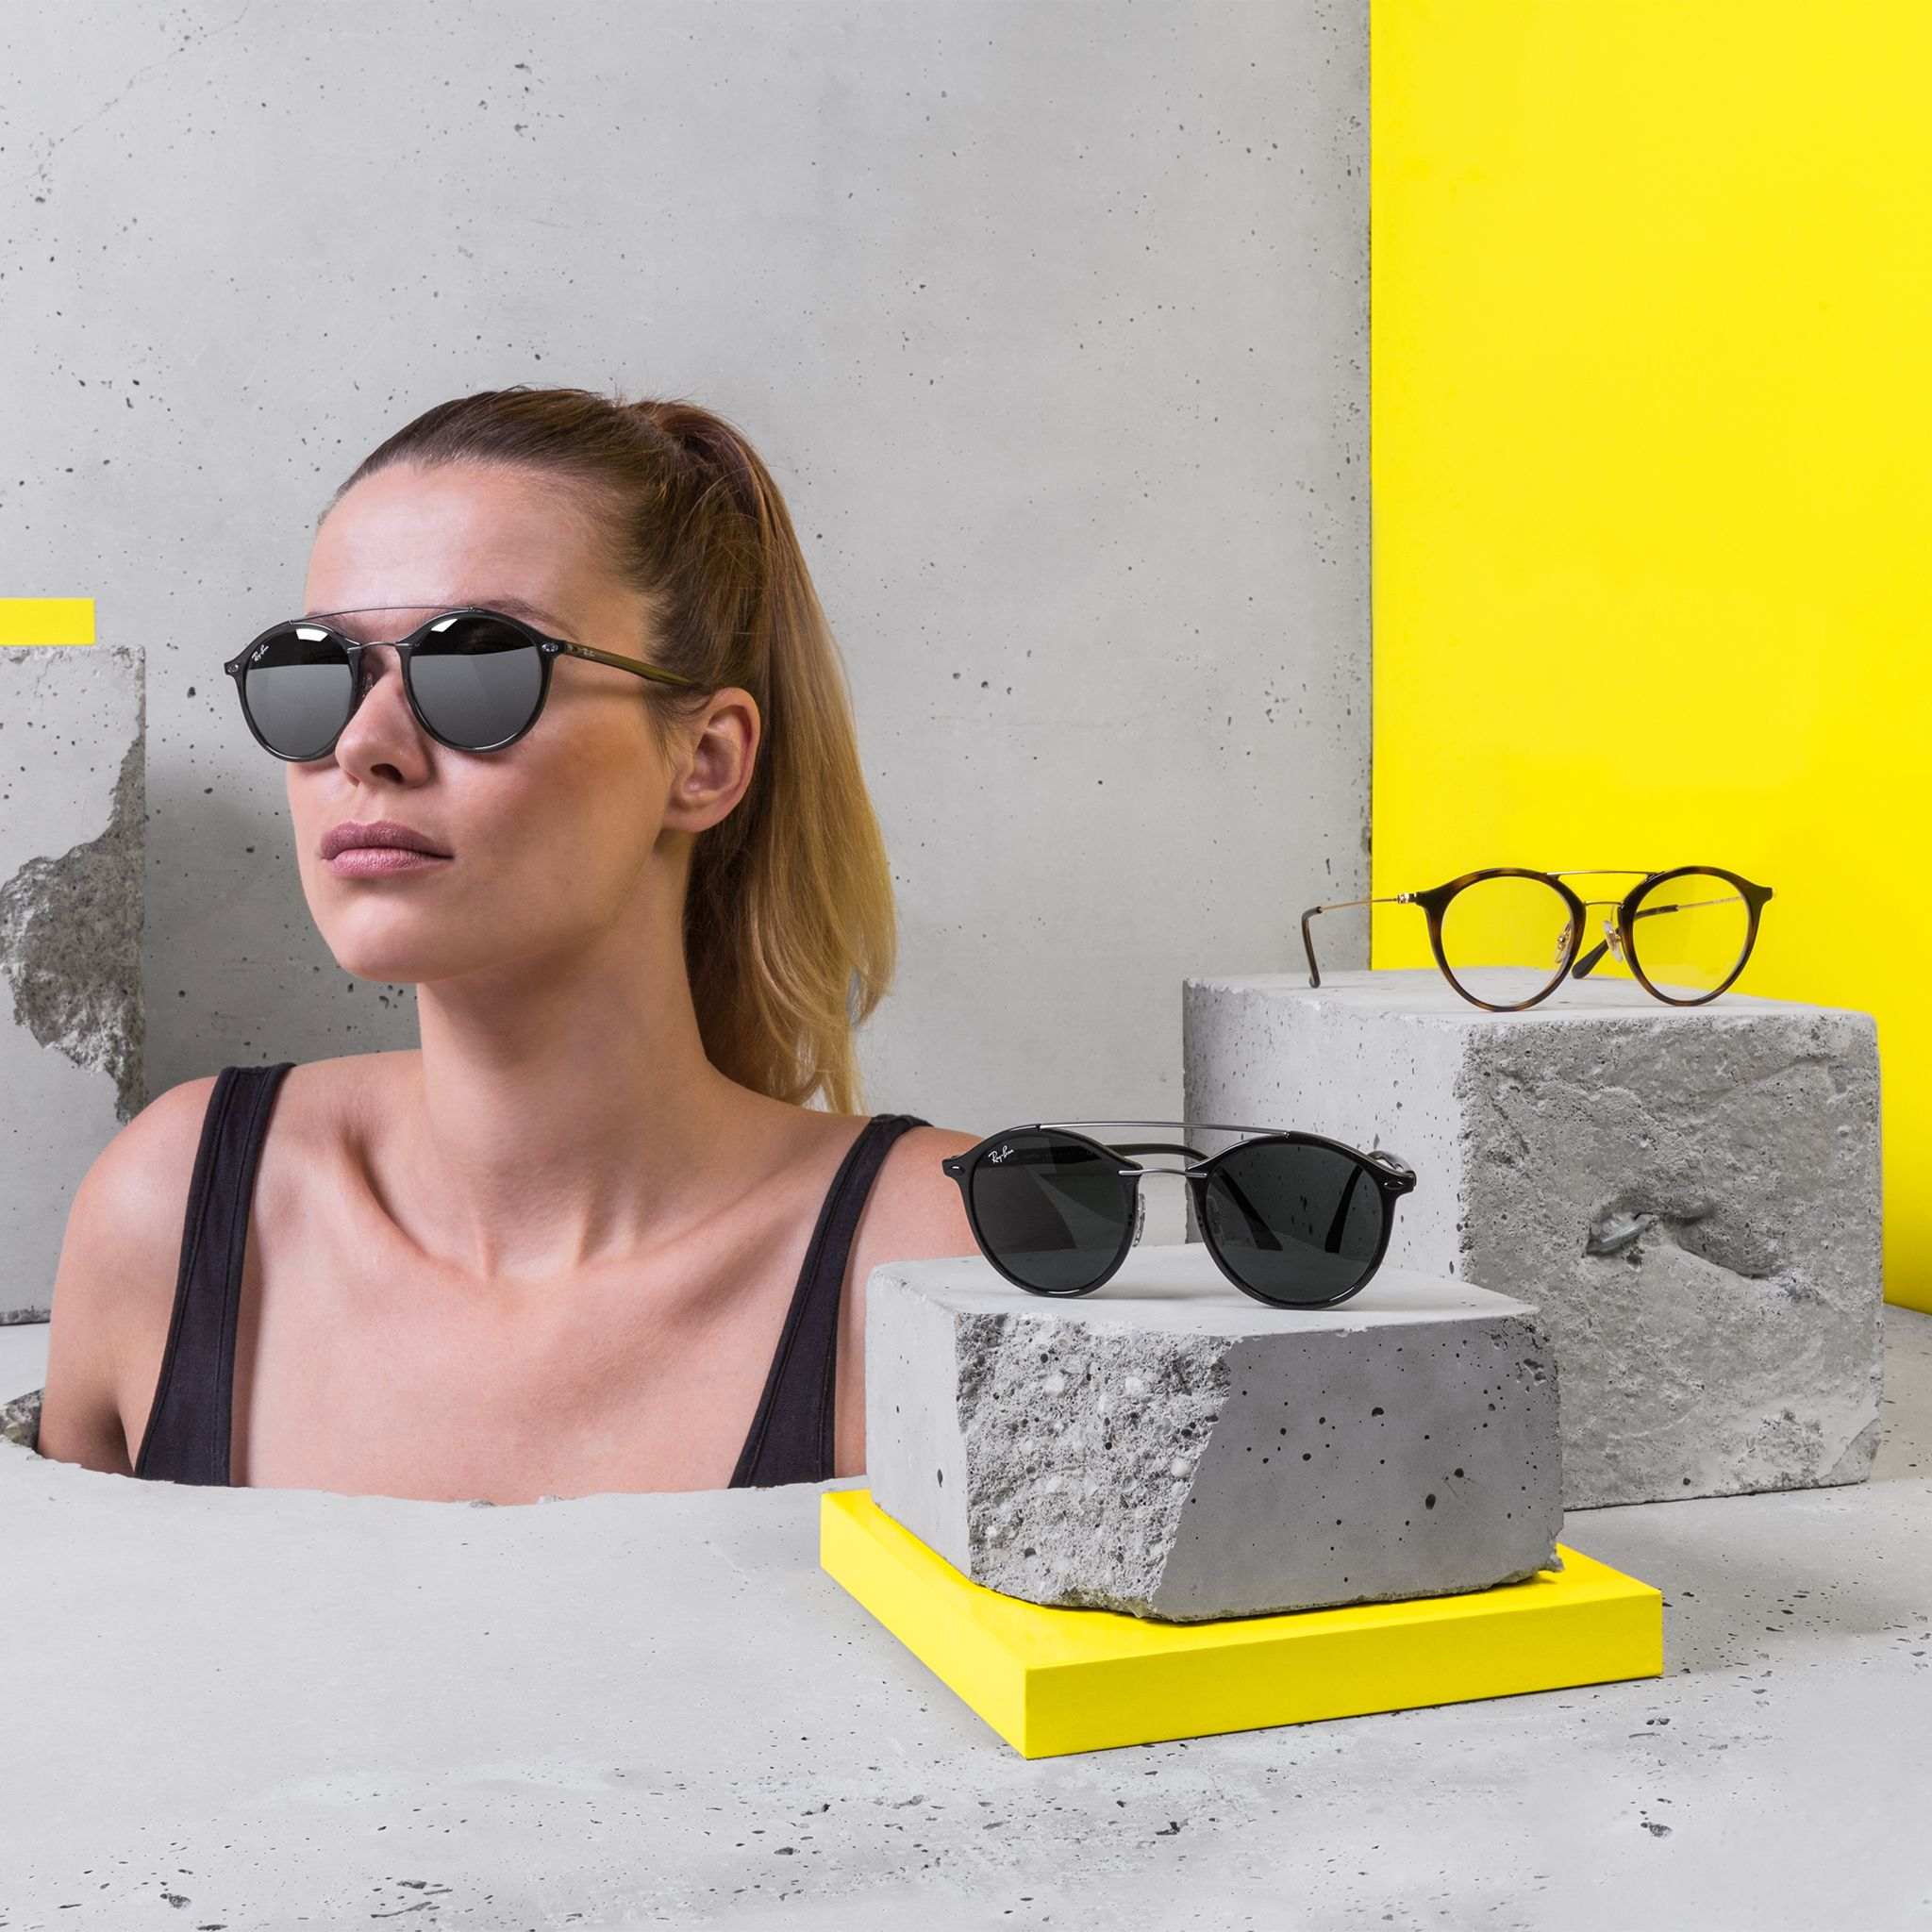 756f643b4 #ItTakesCourage to do the unexpected // Surprise them all in Double Bridge  frames